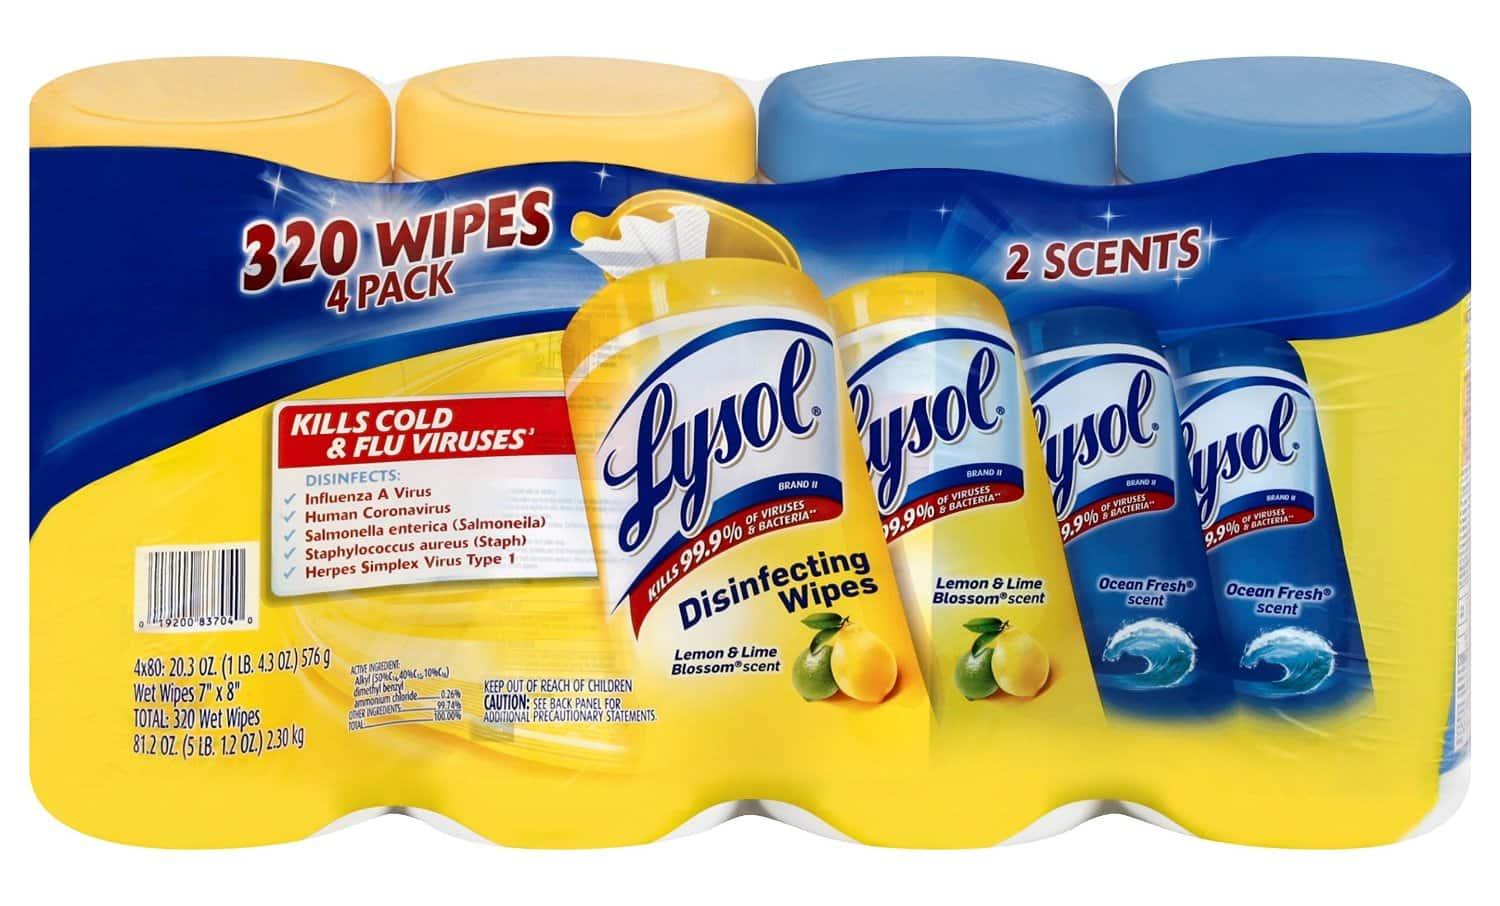 320-Count Lysol Disinfecting Wipes Value Pack (Lemon & Lime Blossom Scent & Ocean Fresh Scent) $7.79 Shipped w/ Prime Amazon.com